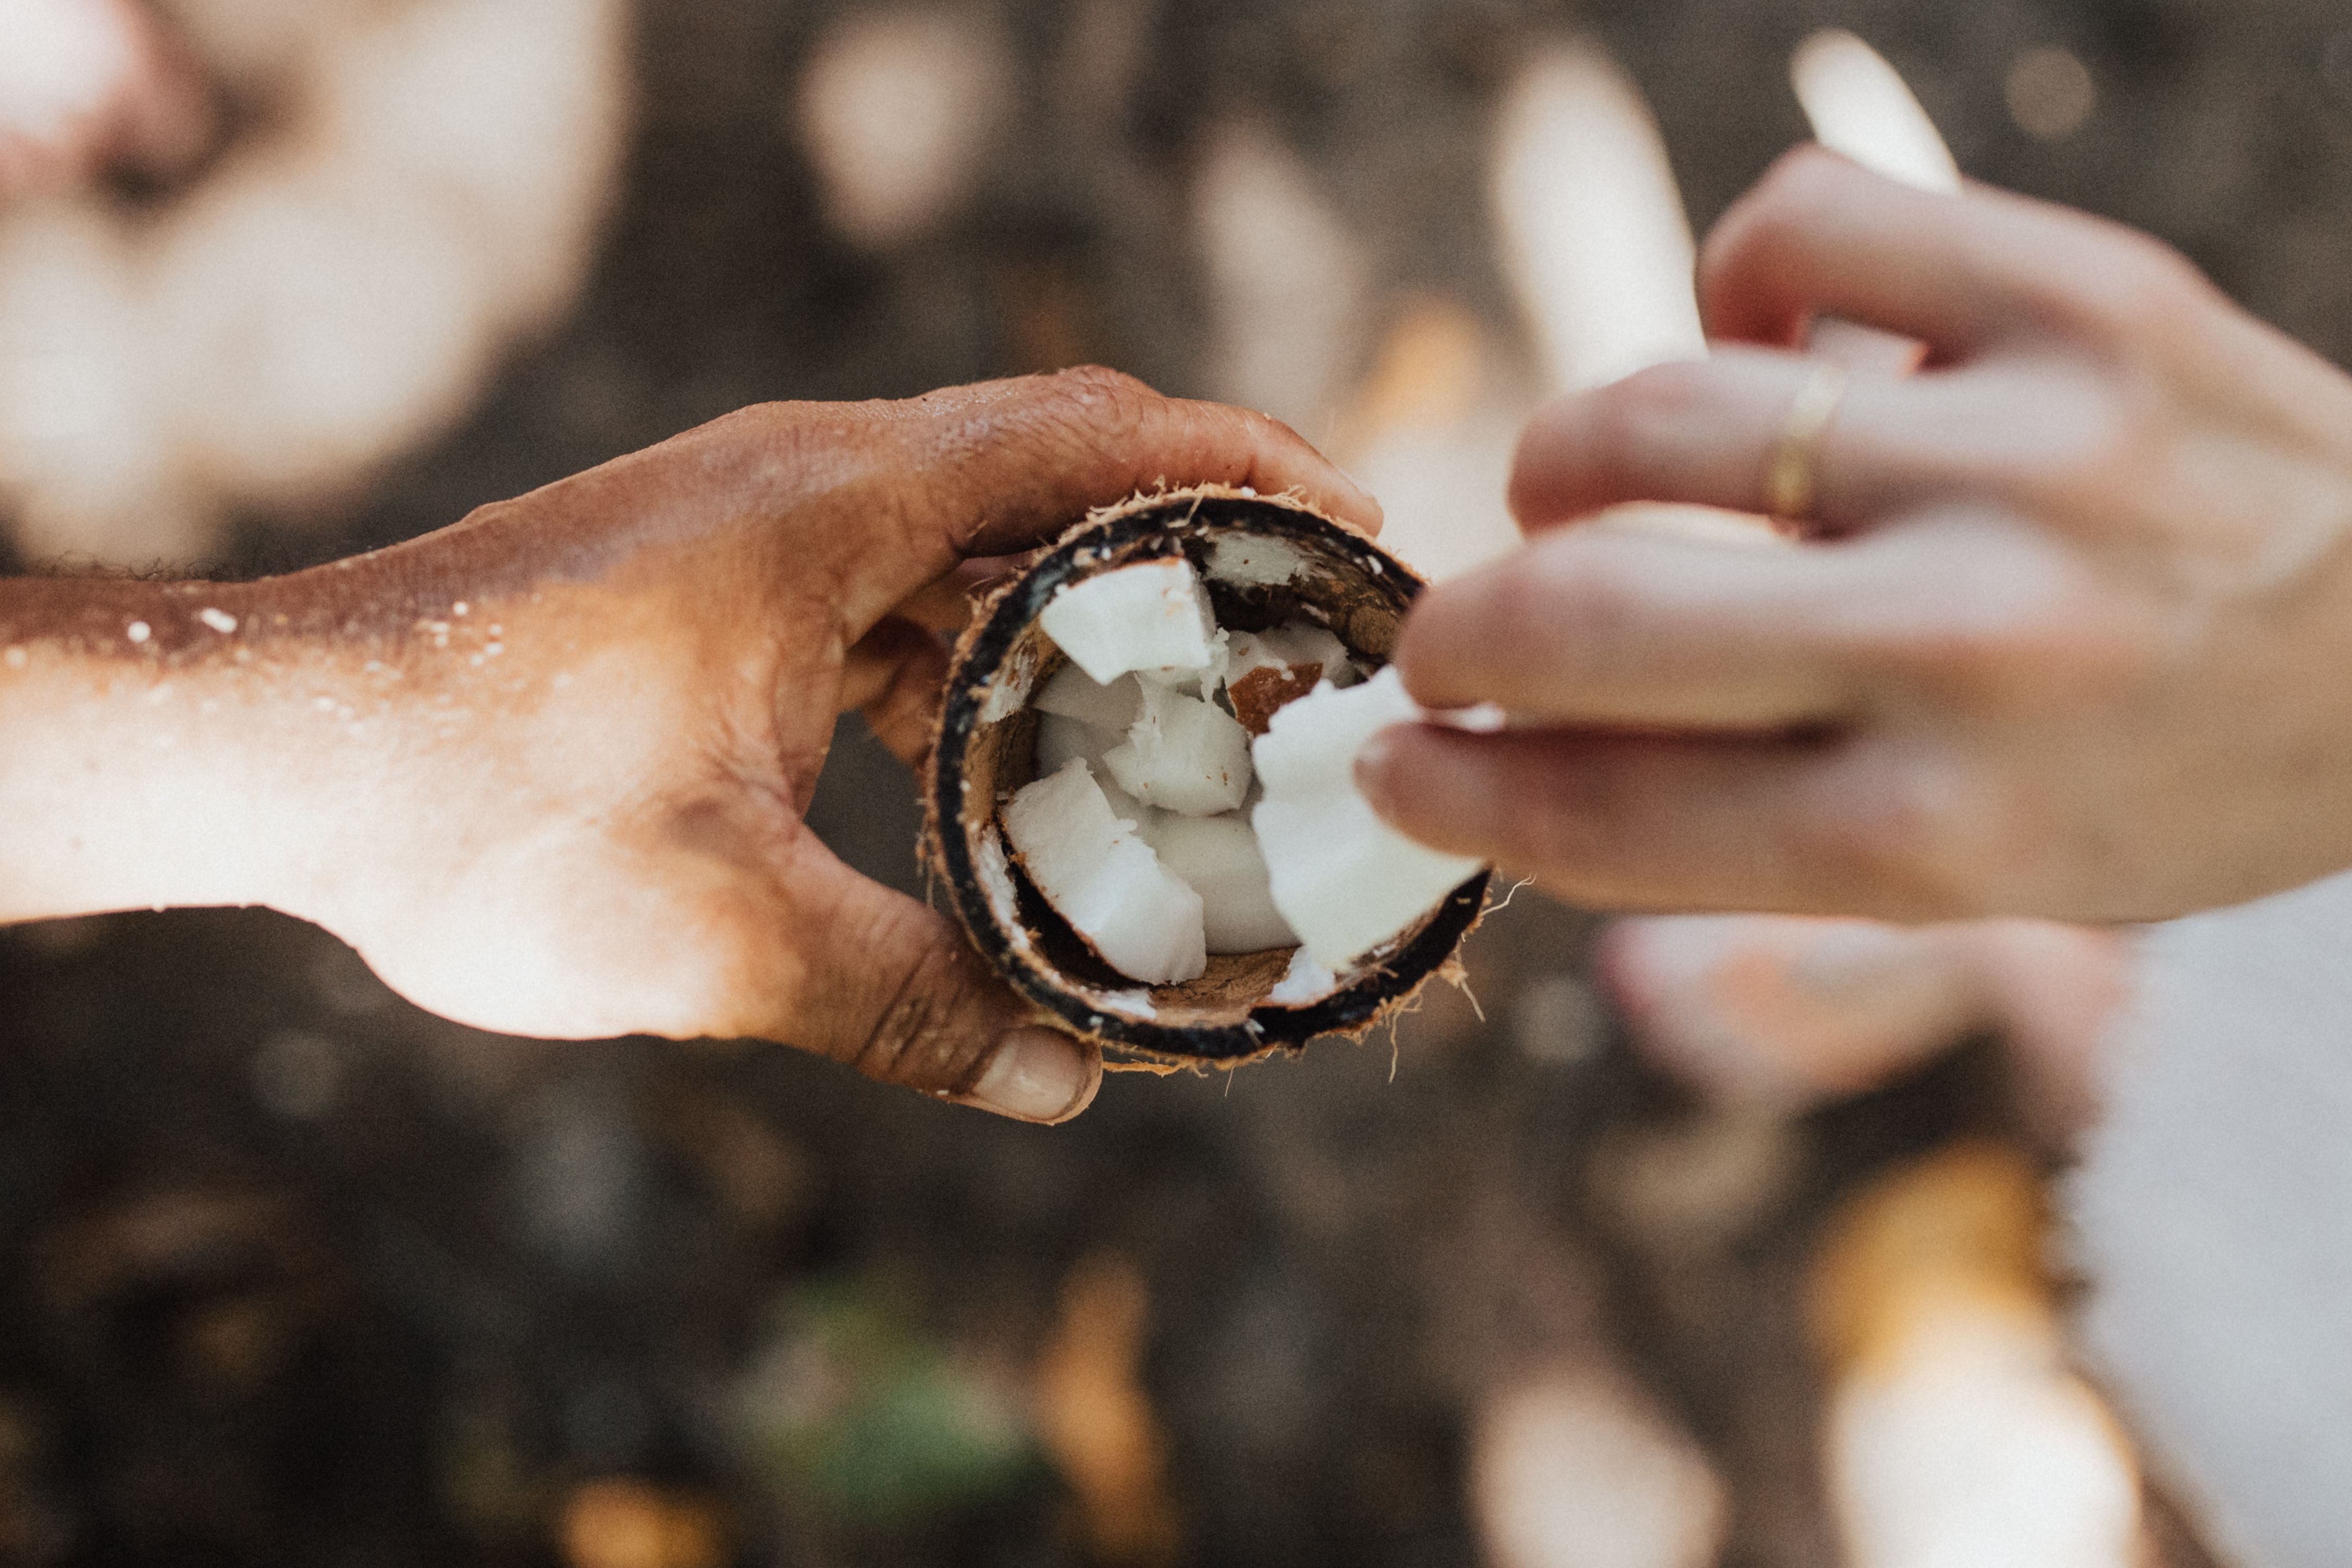 top-view photo of person scraping coconut